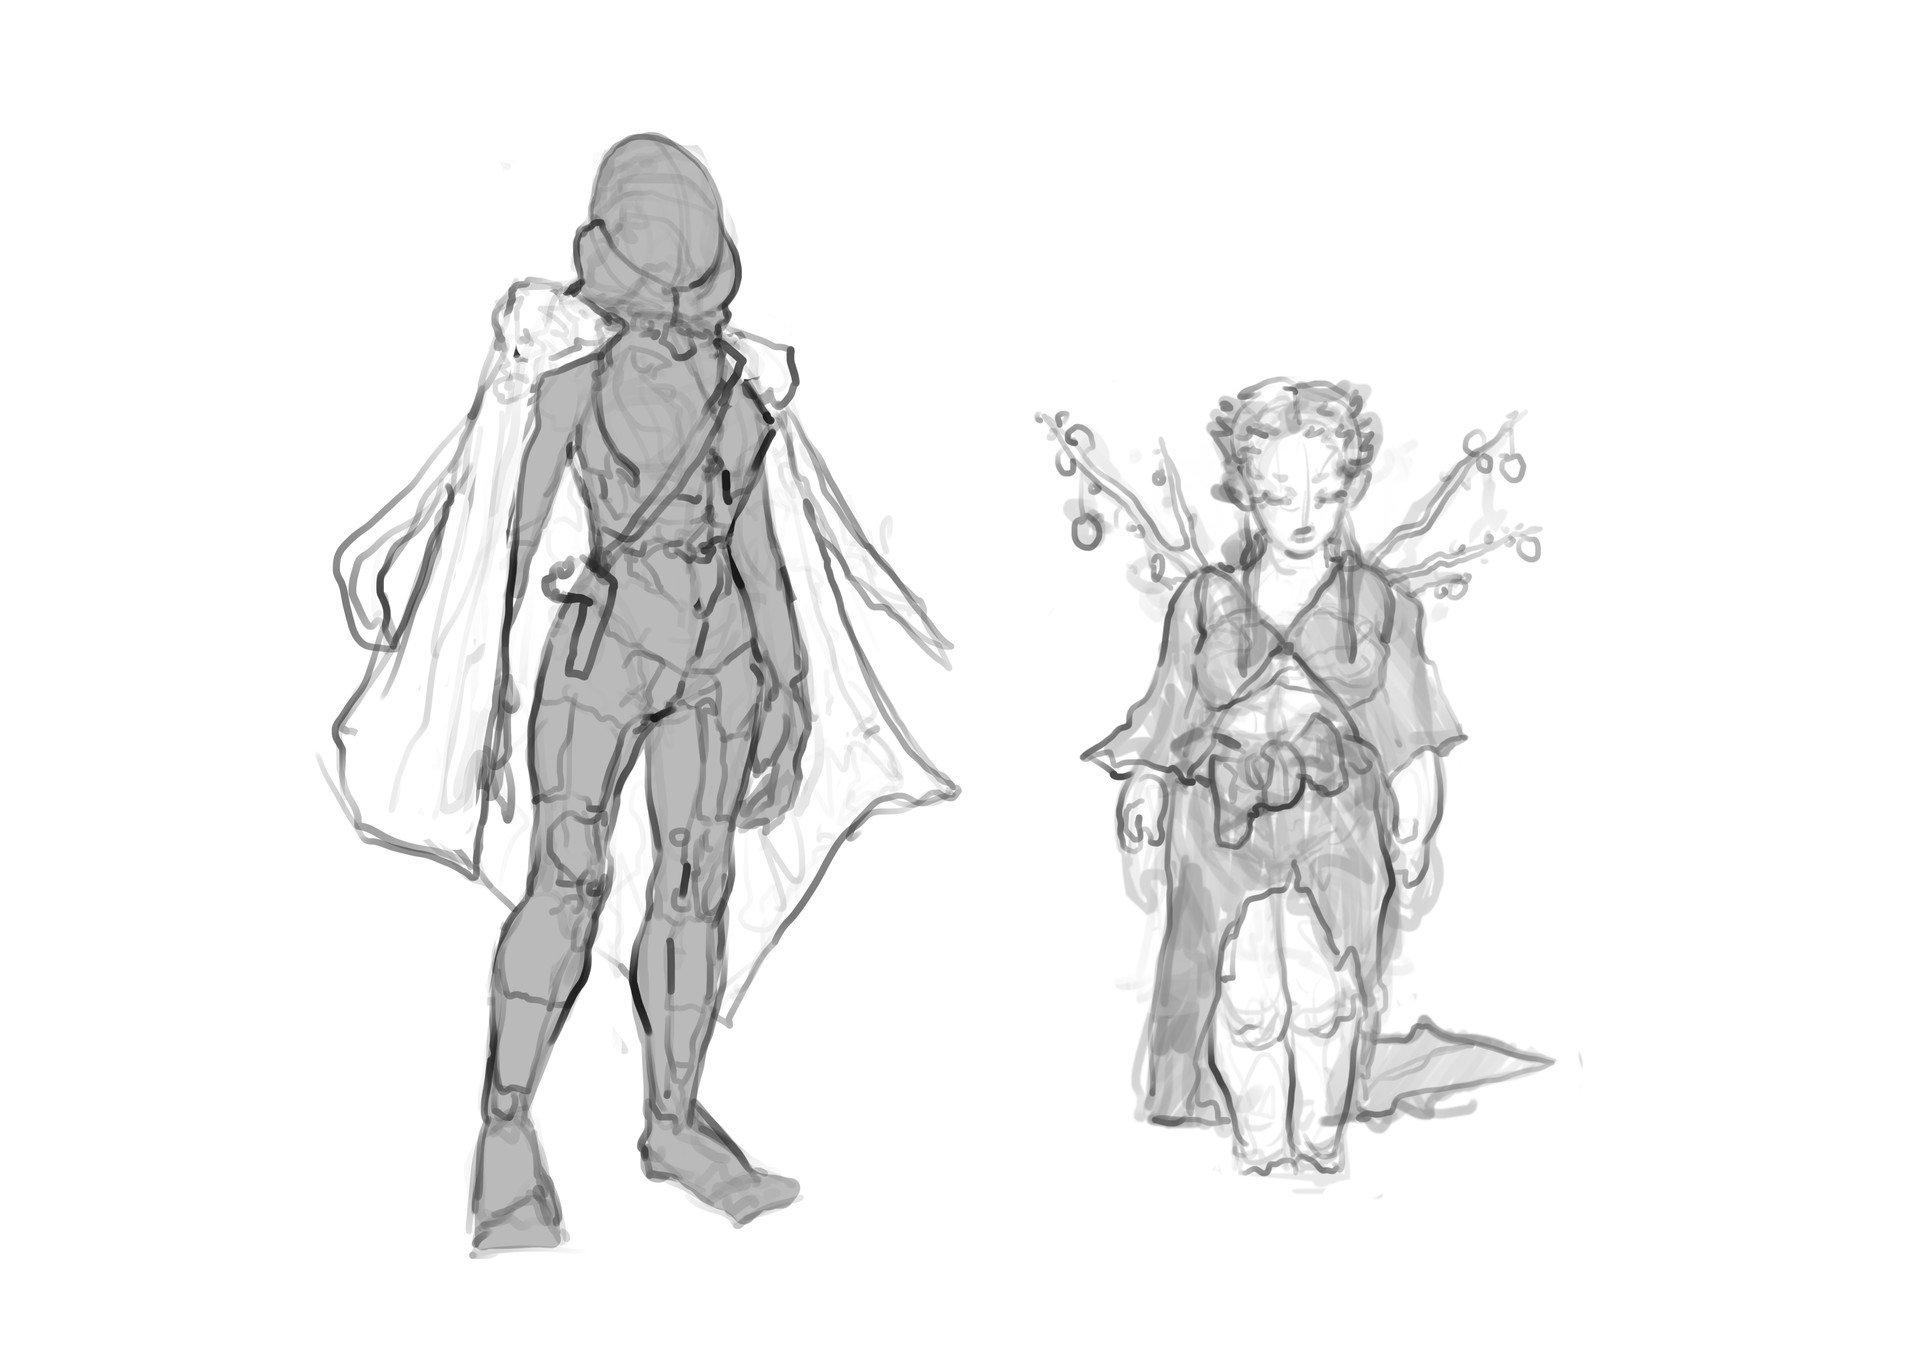 Madeline buanno character sketches